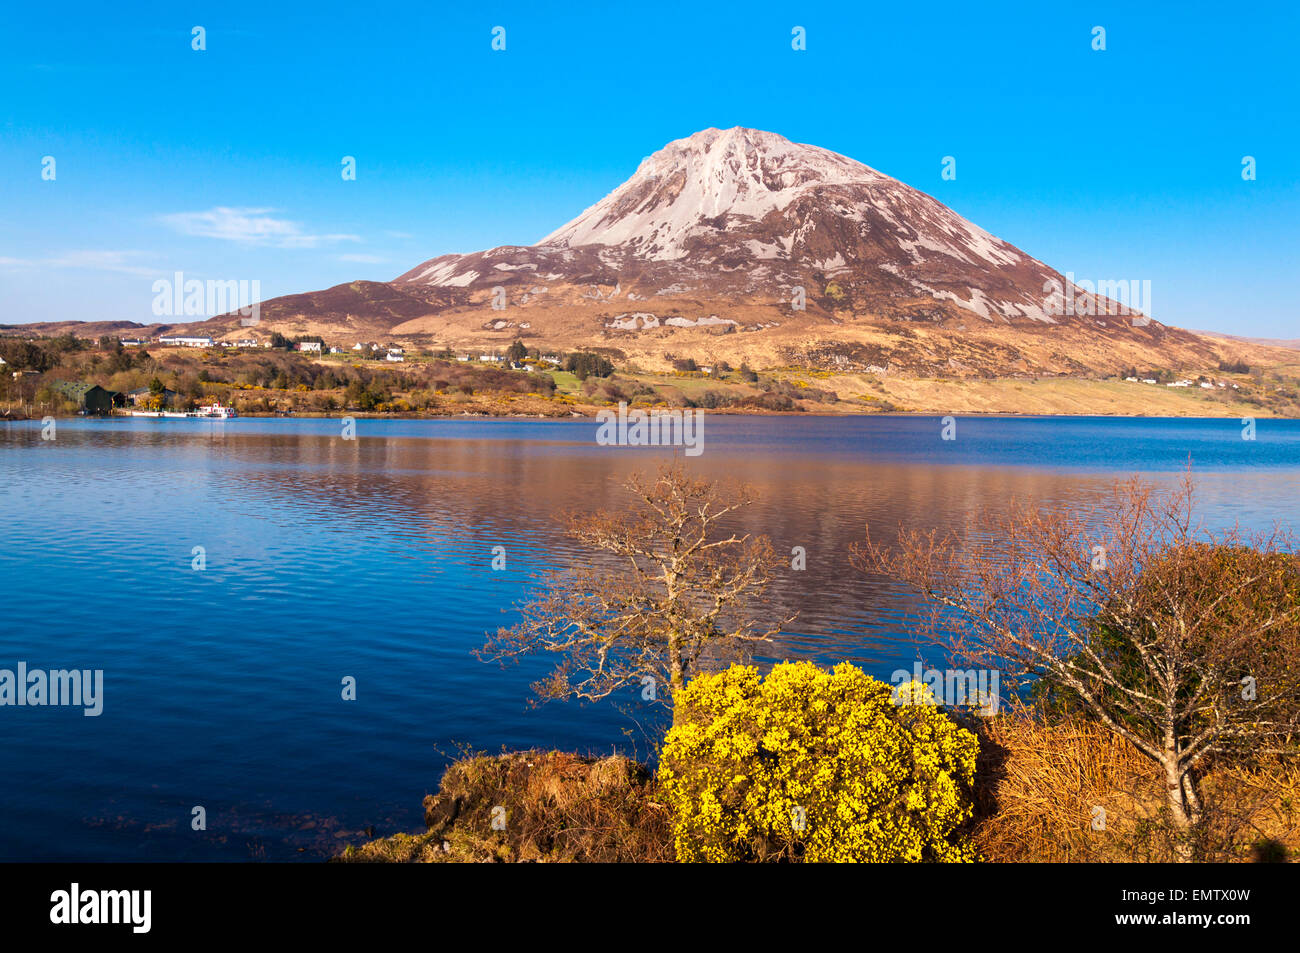 Mount Errigal, An Earagail,  a 751-metre (2,464 ft) mountain near Gweedore in County Donegal, Ireland. - Stock Image